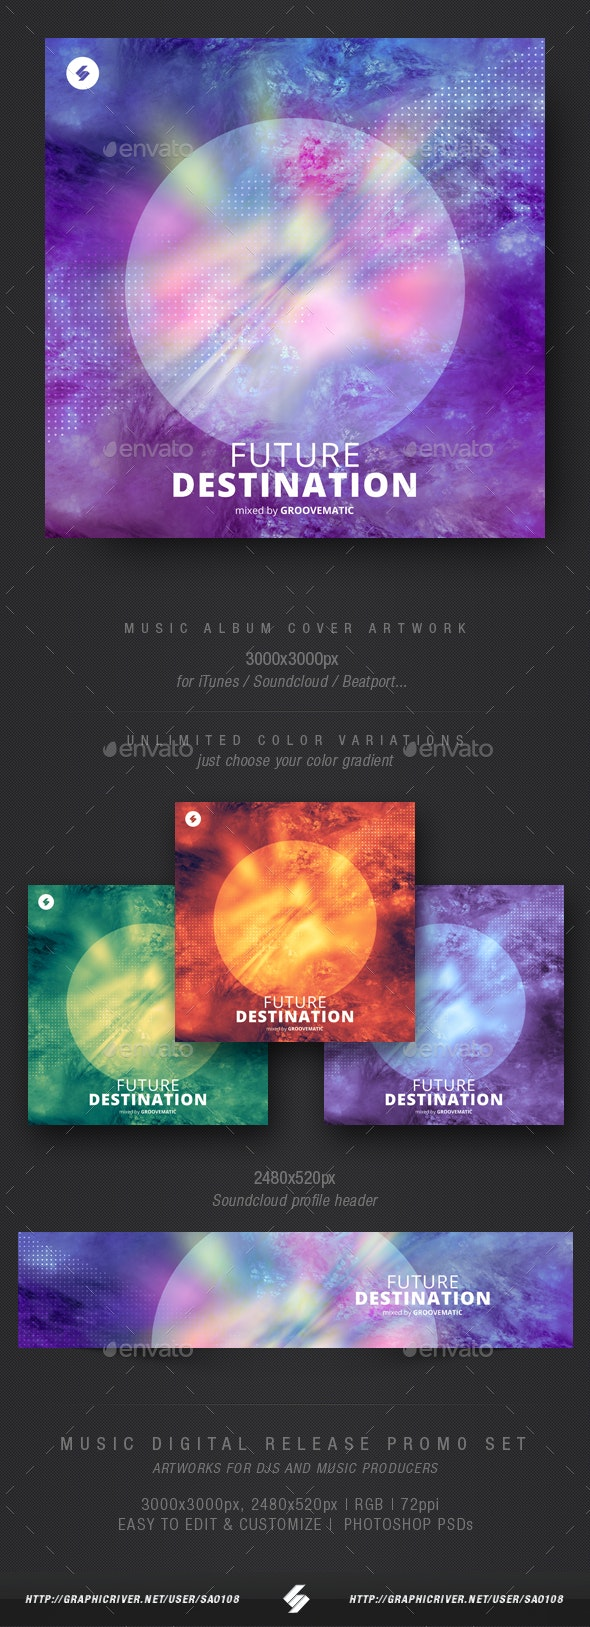 Future Destination - Electronic Music Album Cover Artwork Template - Miscellaneous Social Media